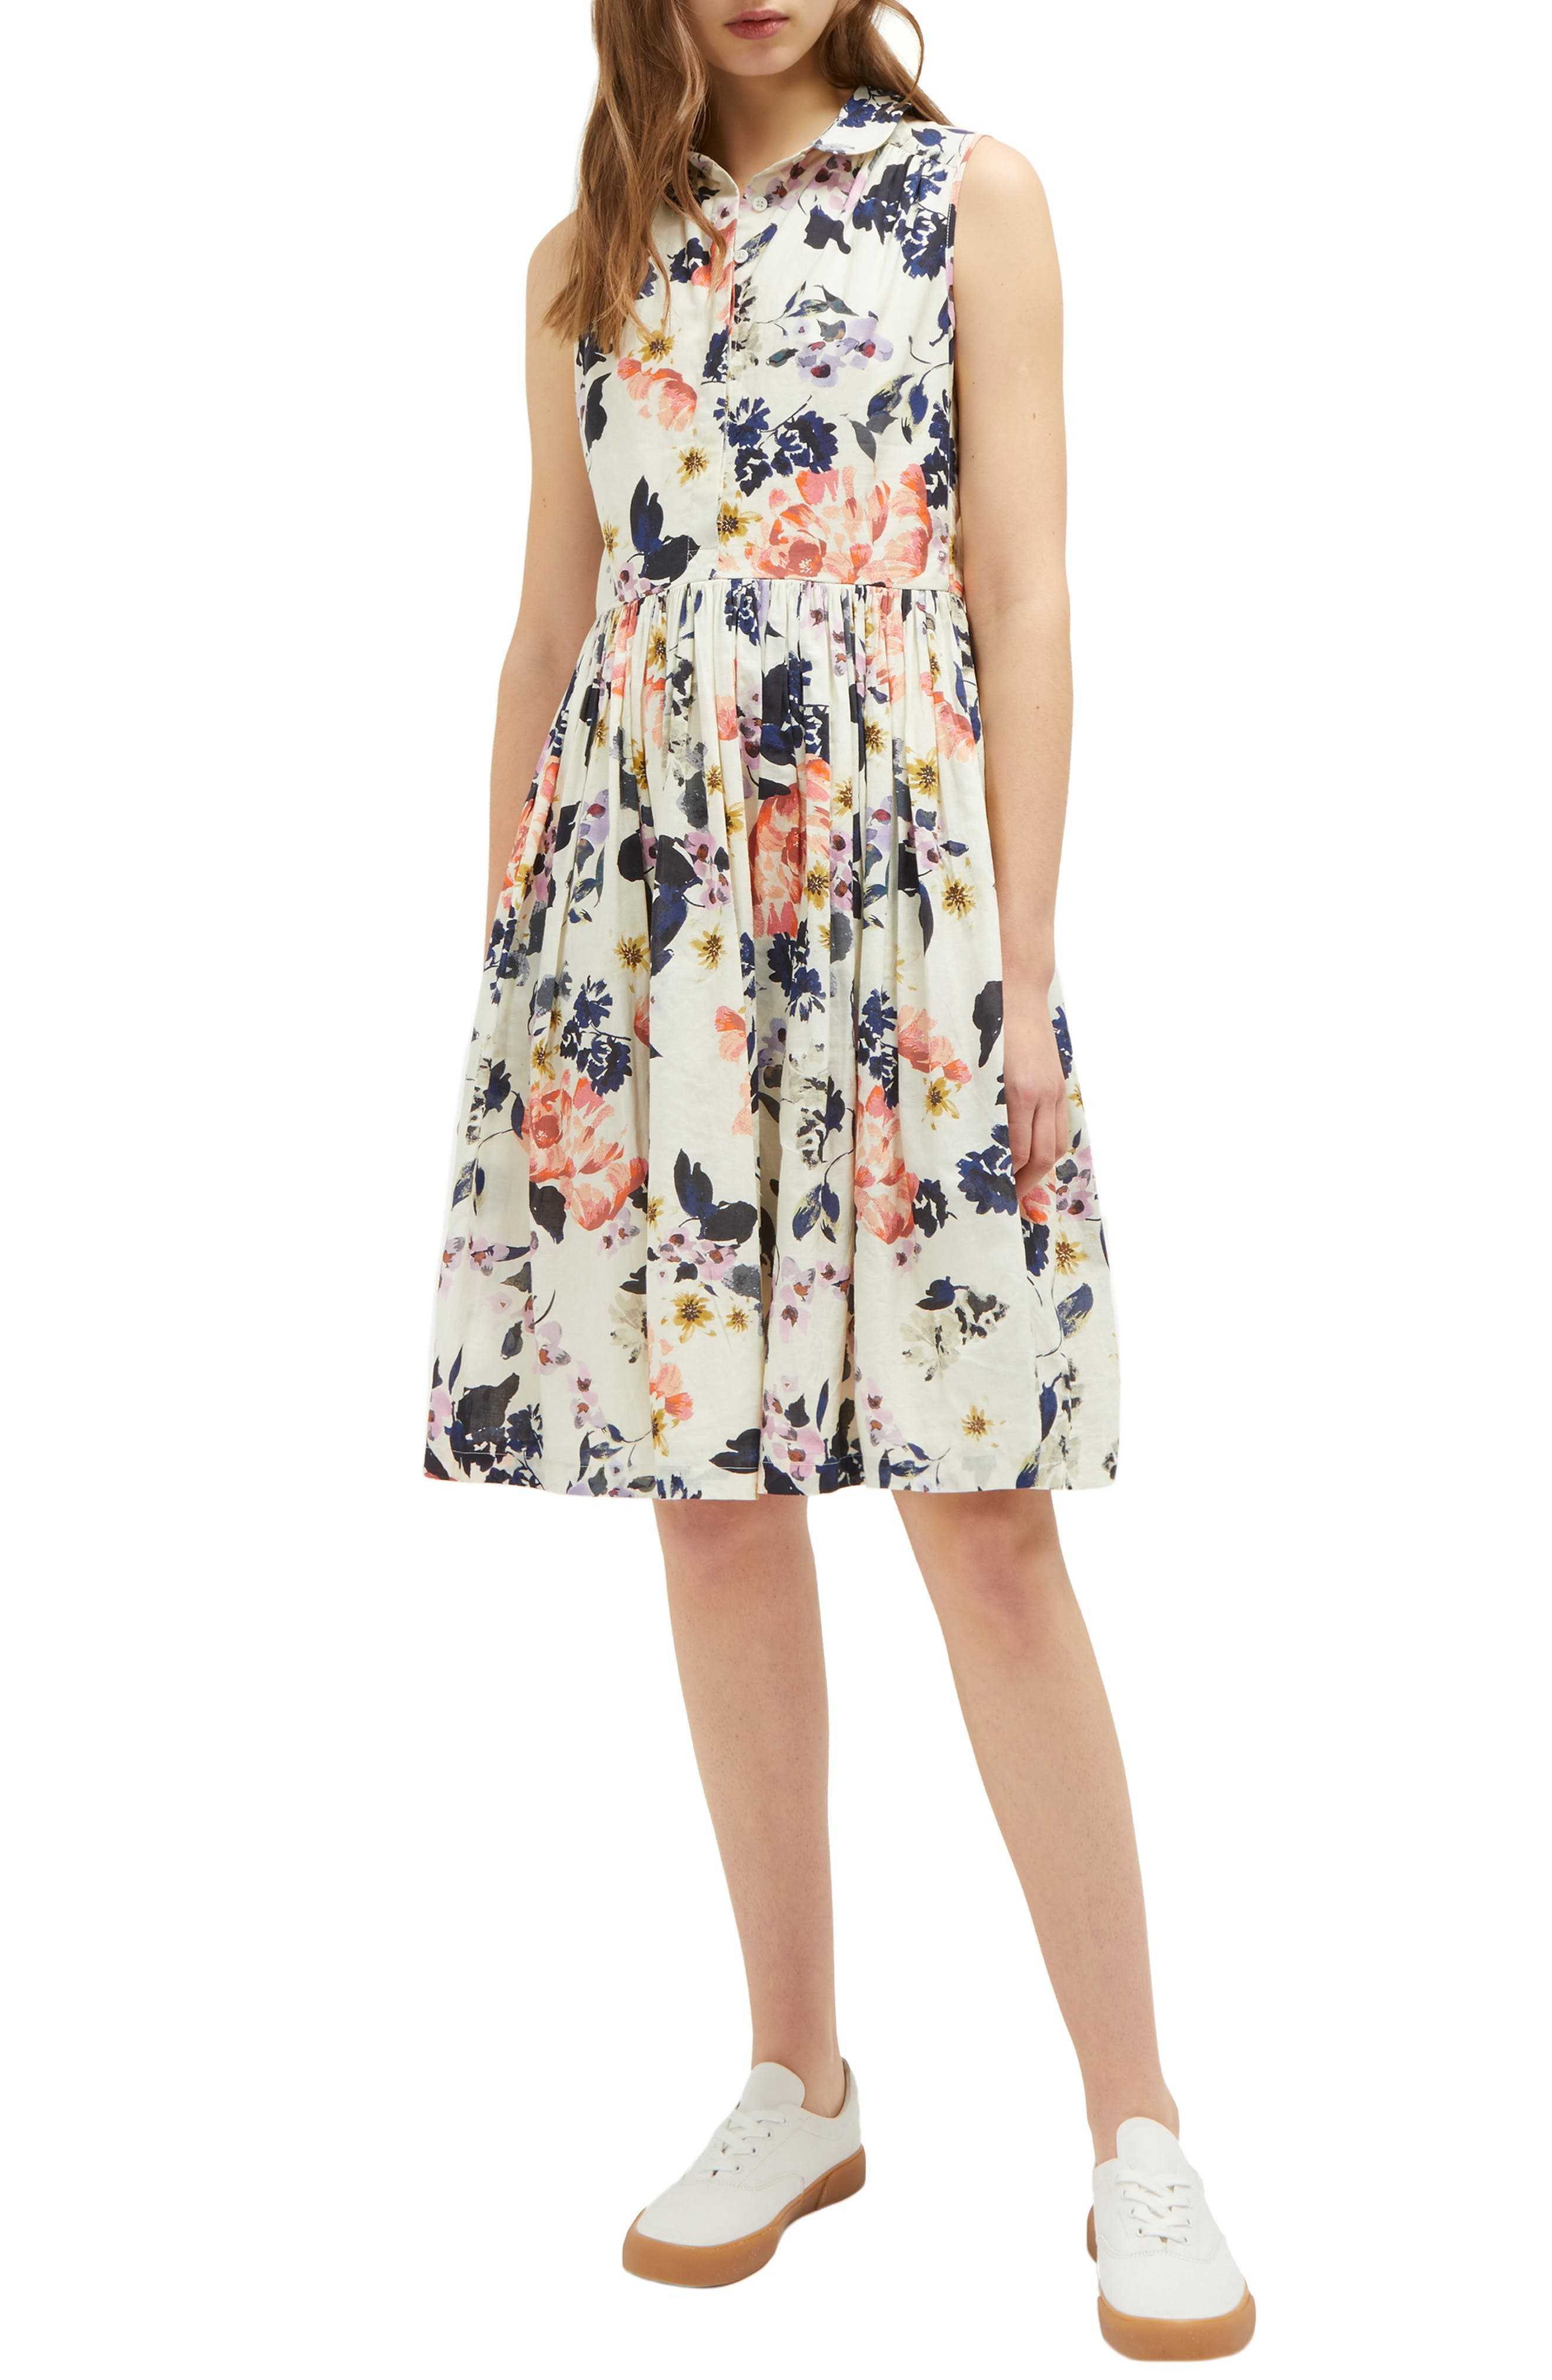 French Connection Acaena Cotton Voile Fit & Flare Dress, Ivory